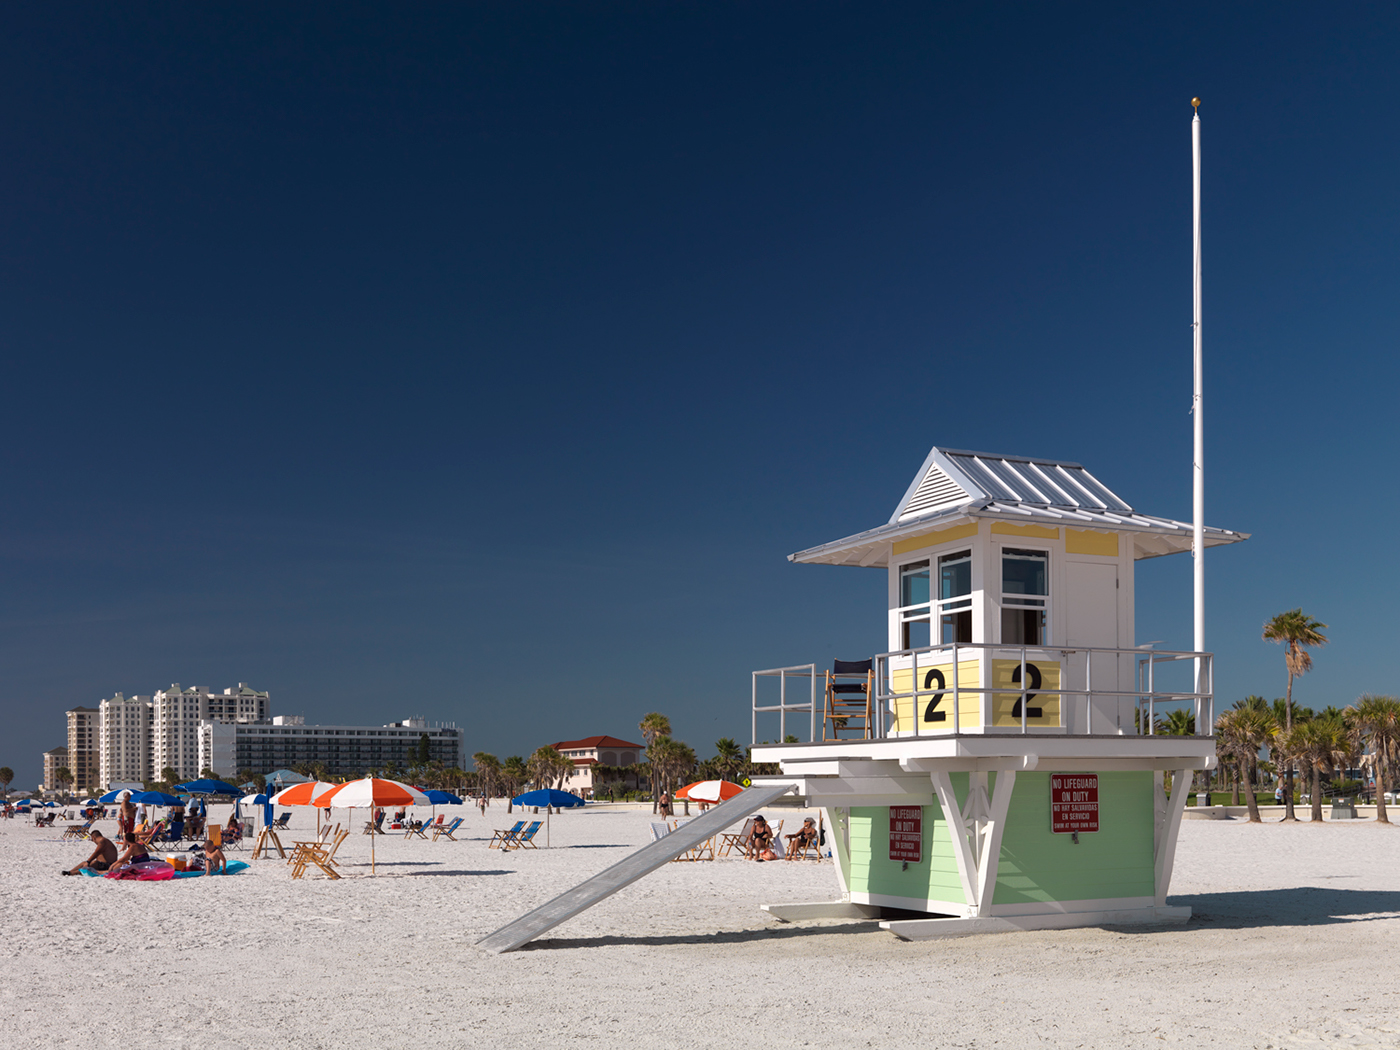 Sp 26 Clearwater Beach Lifeguard Towers On Behance